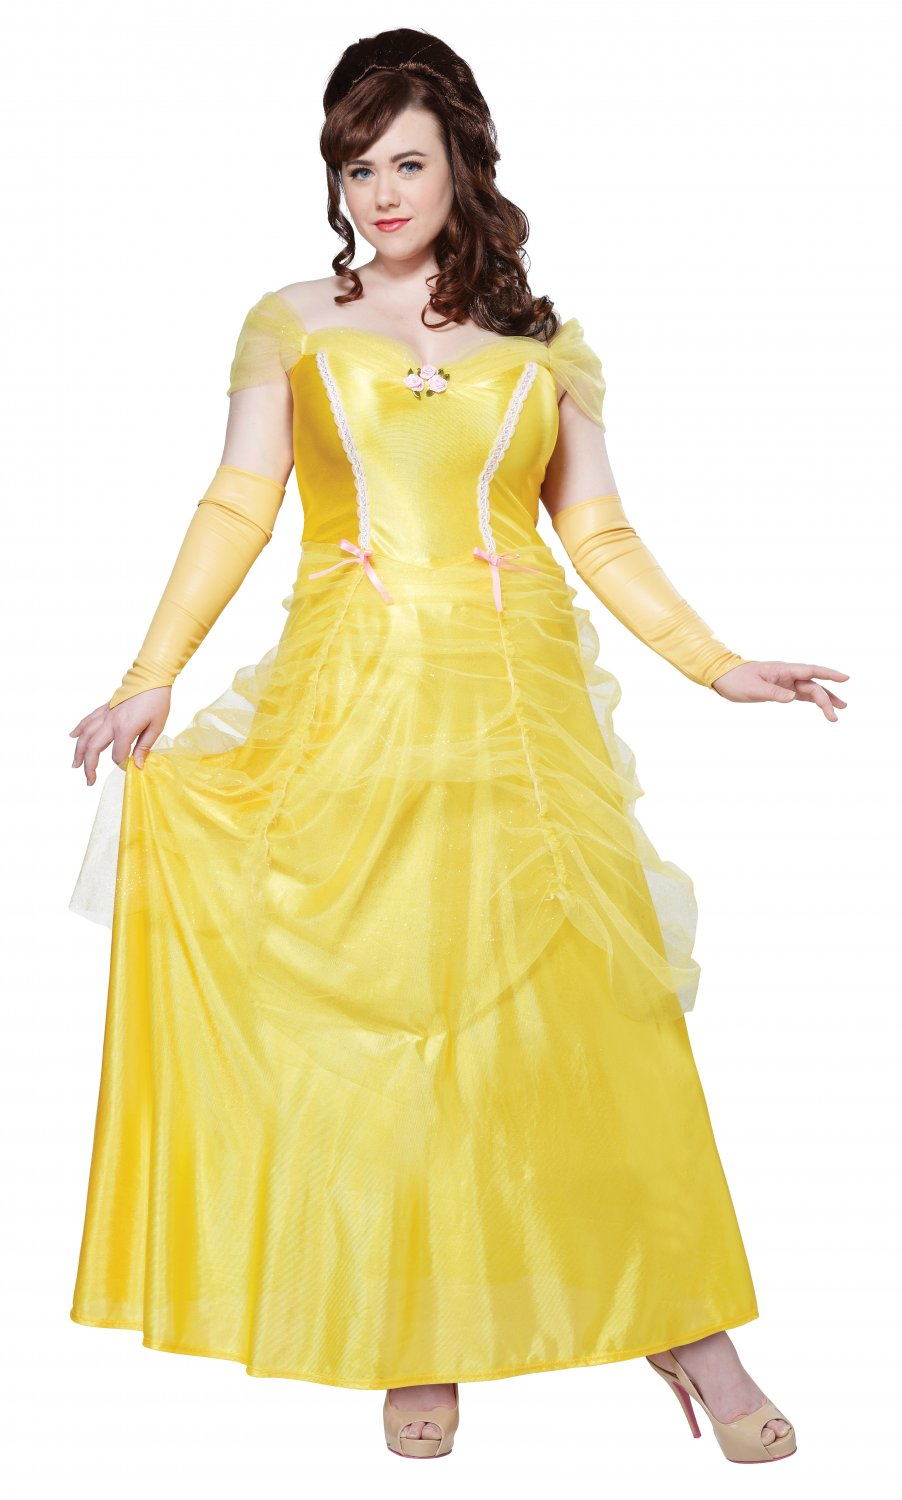 Classic Beauty Belle Plus Size Adult Costume: 2X-Large #01745